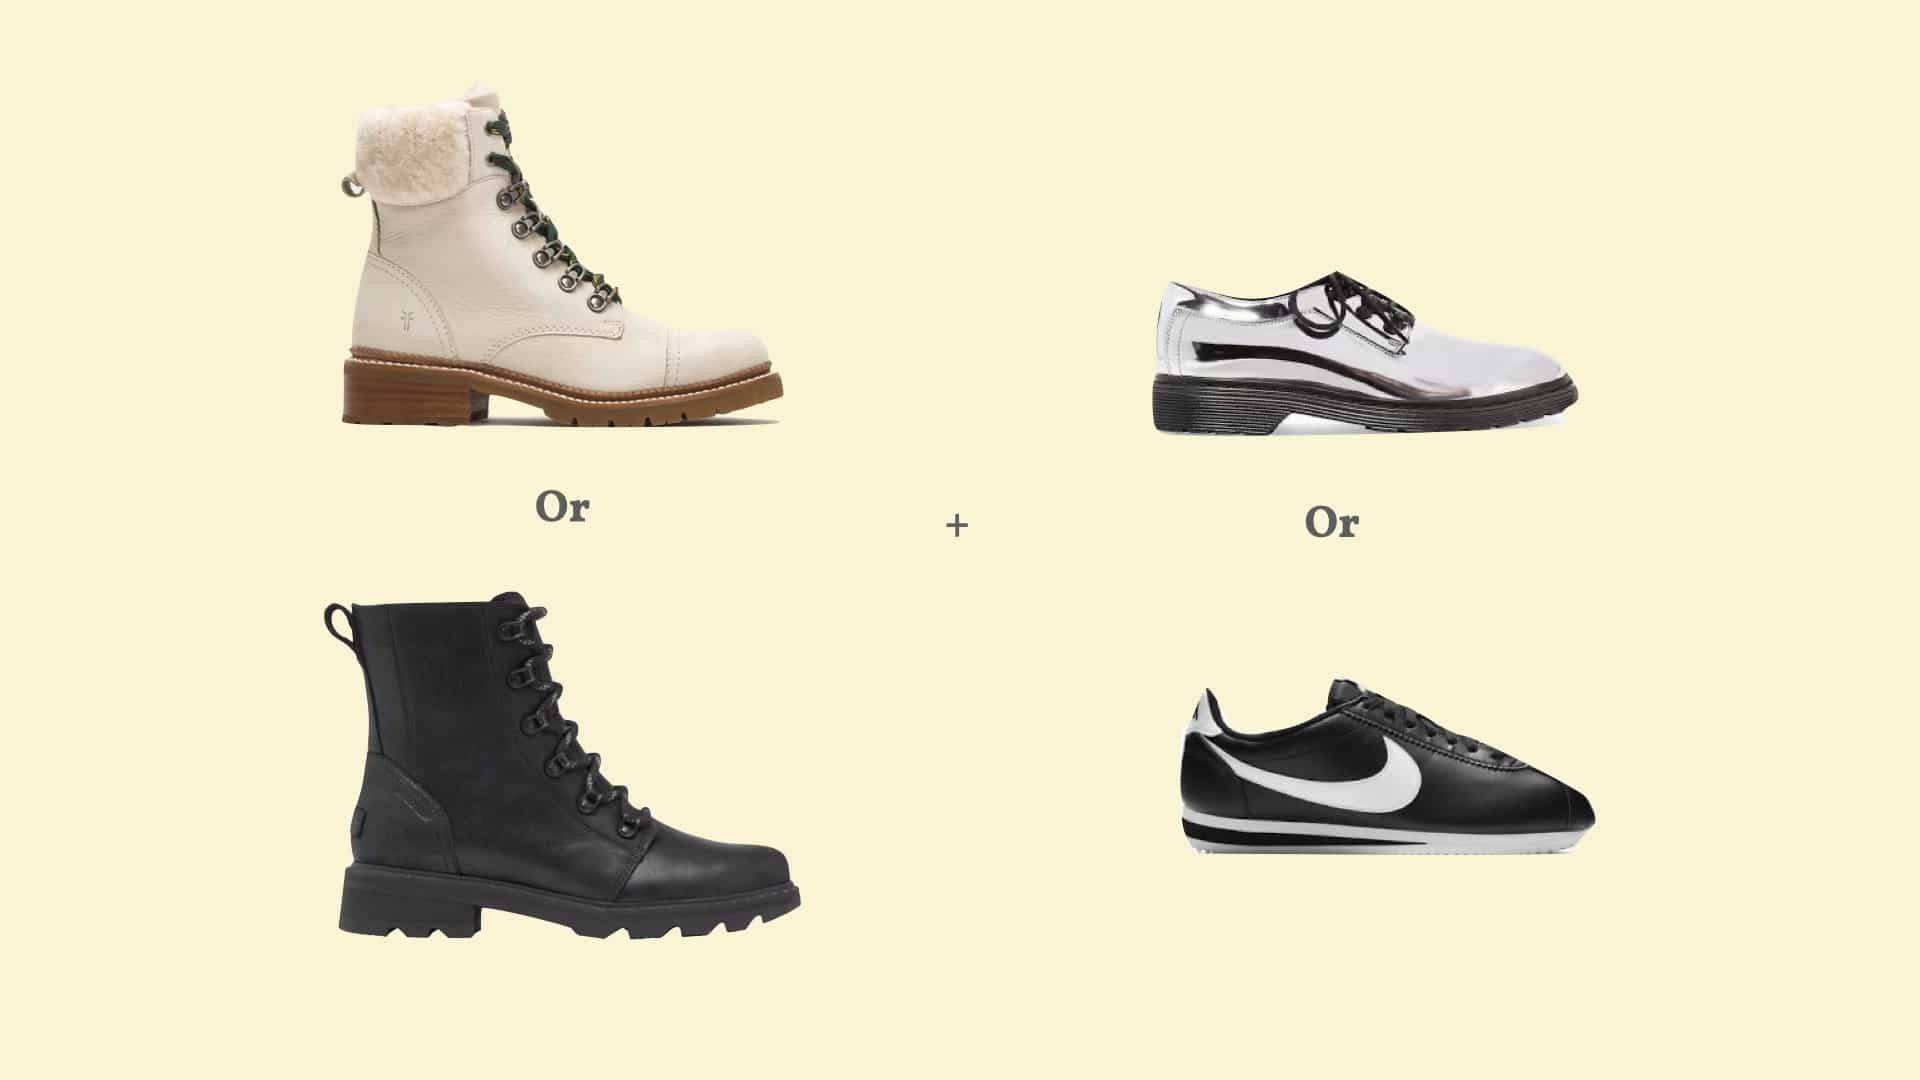 shoes for winter travel